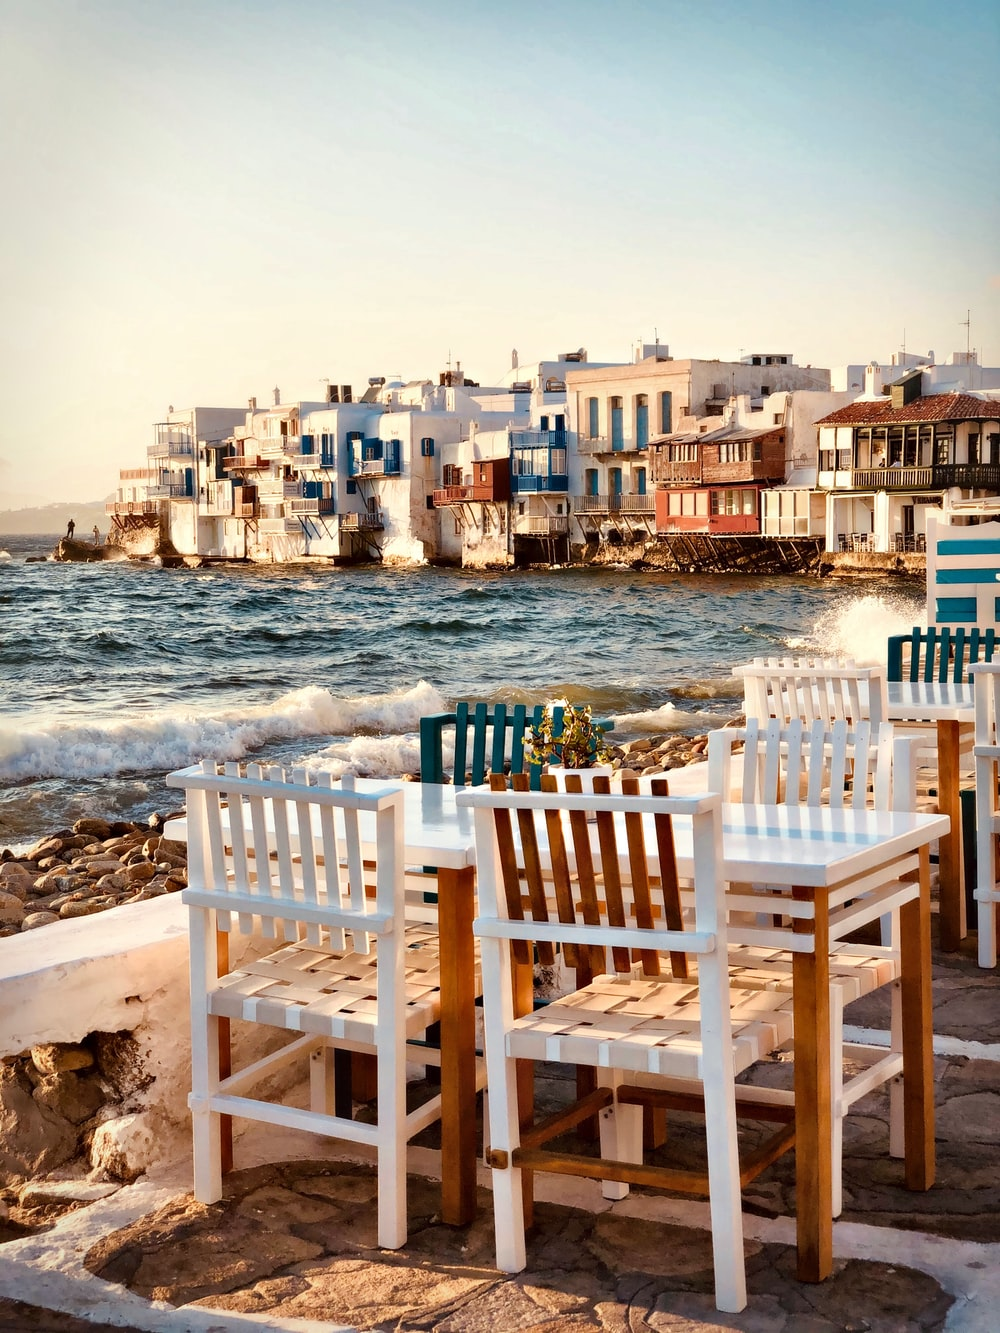 brown wooden chairs on seashore during daytime